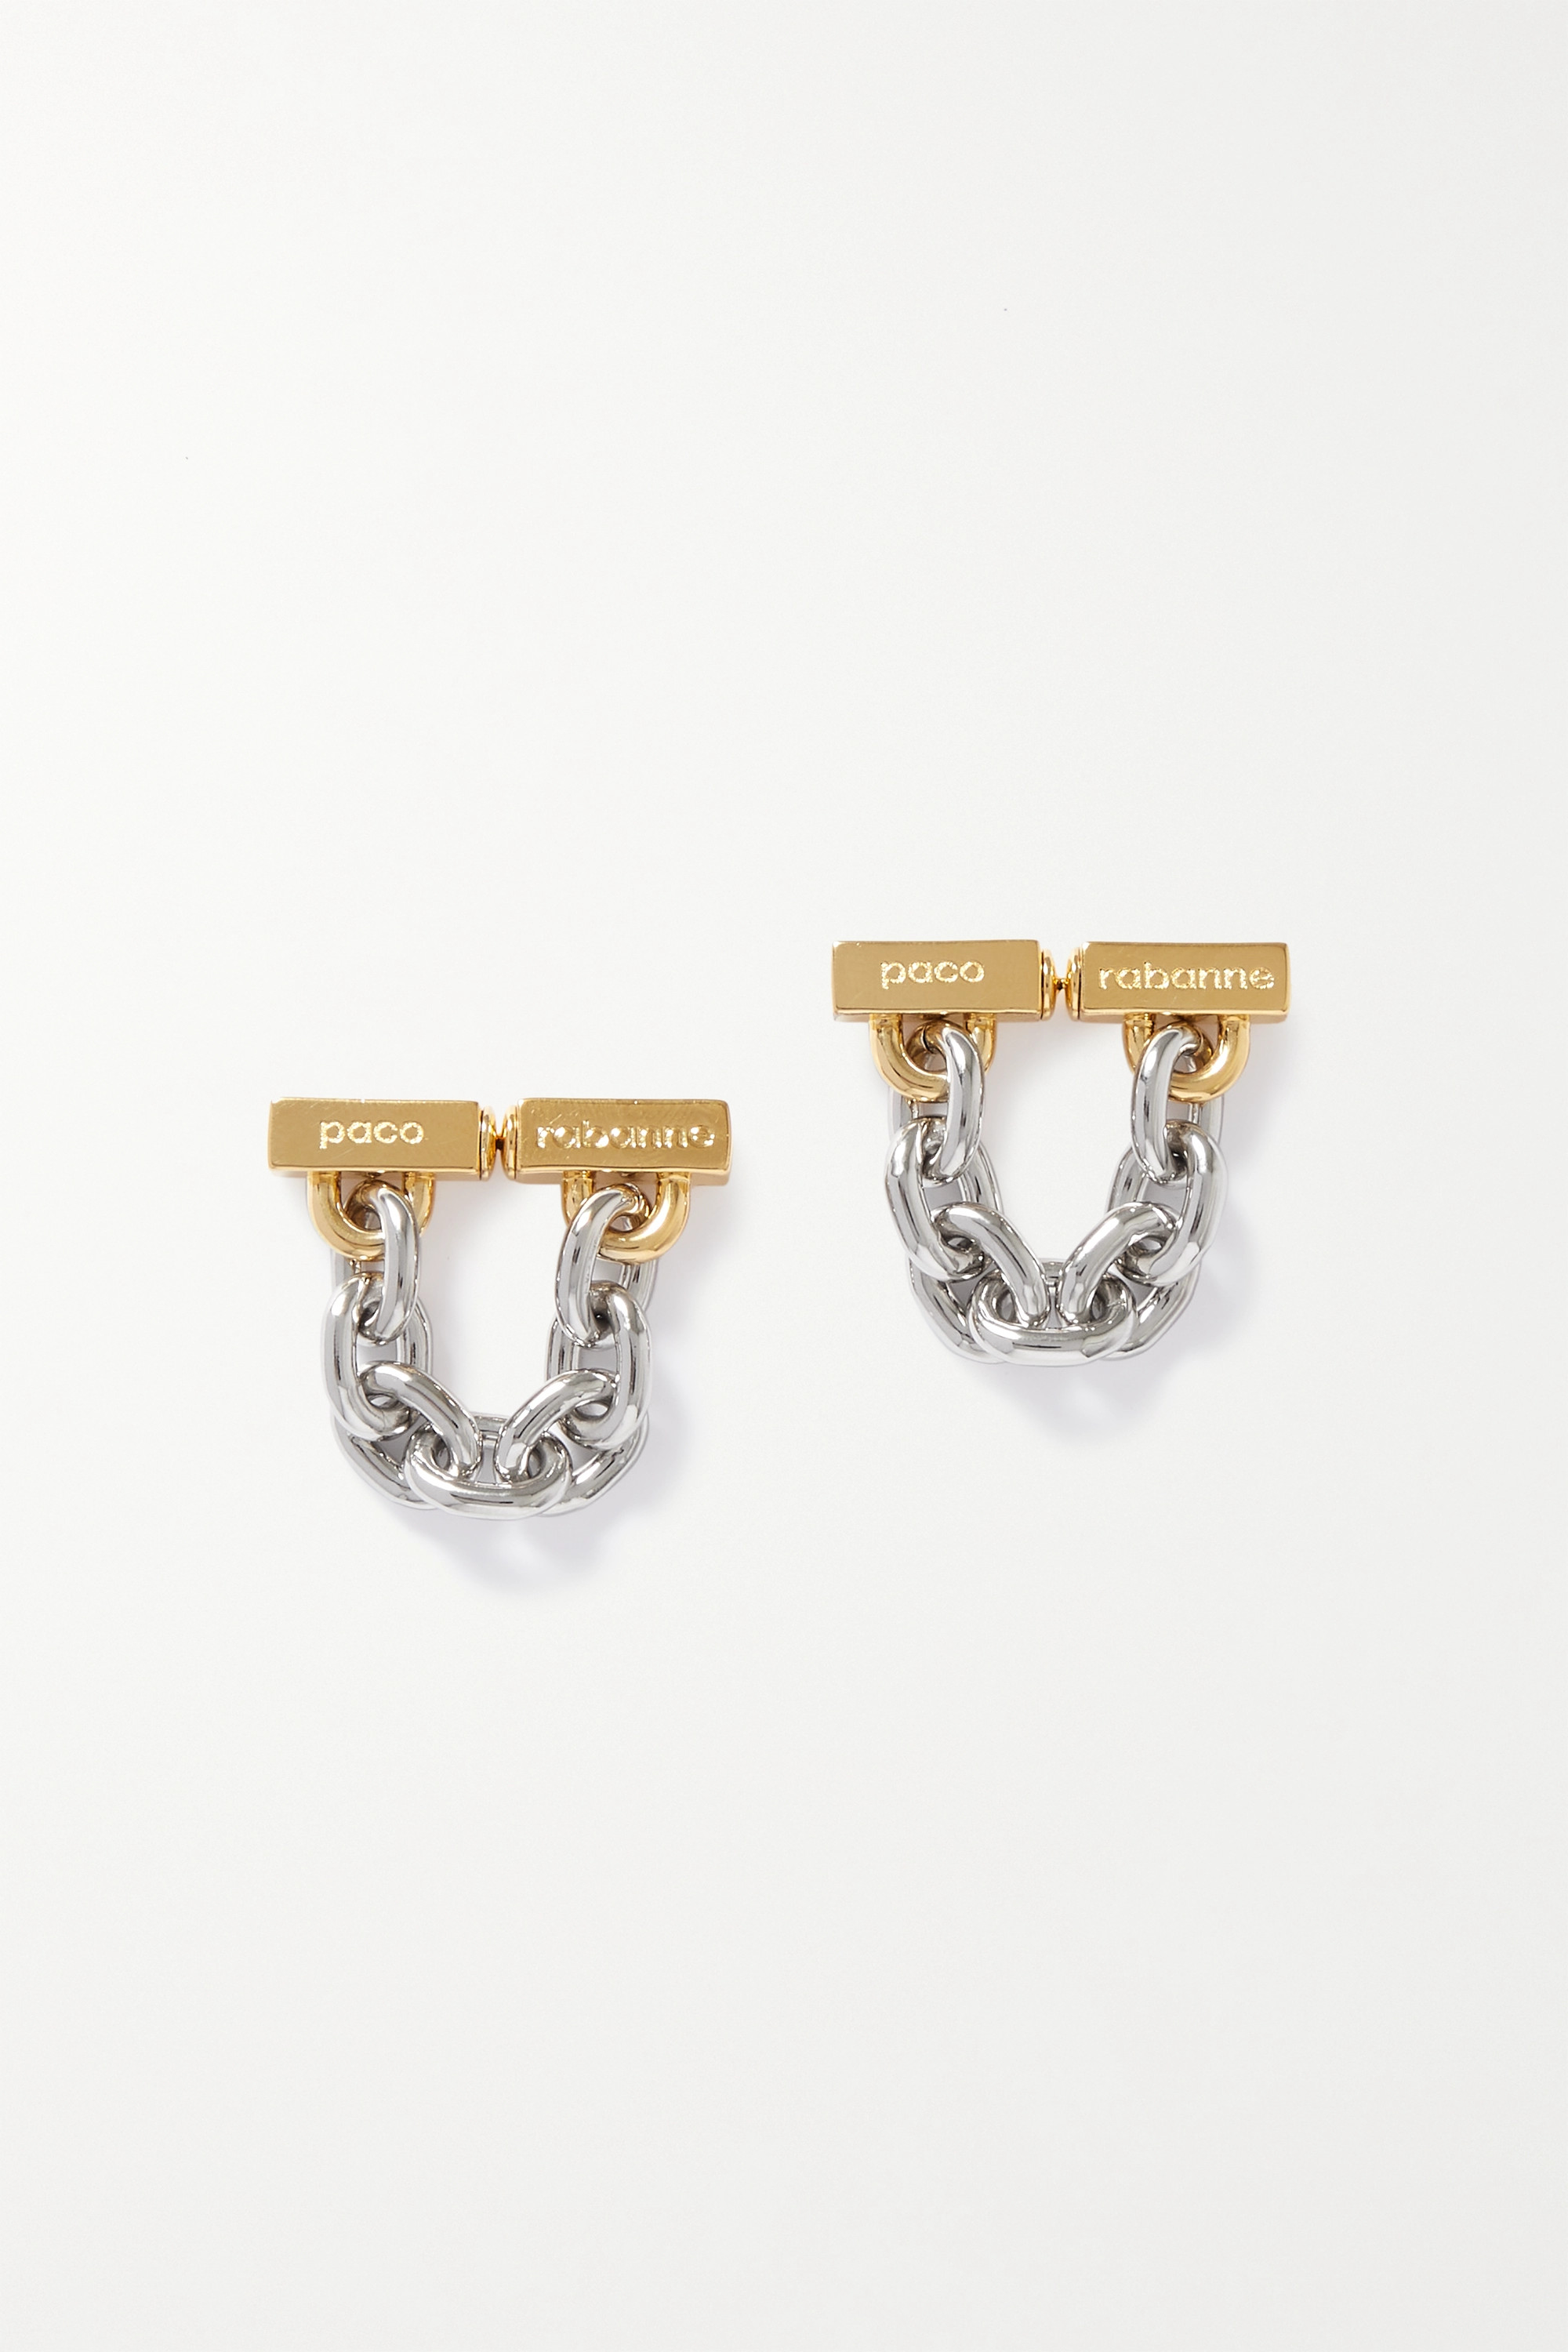 Paco Rabanne Gold- and silver-tone earrings